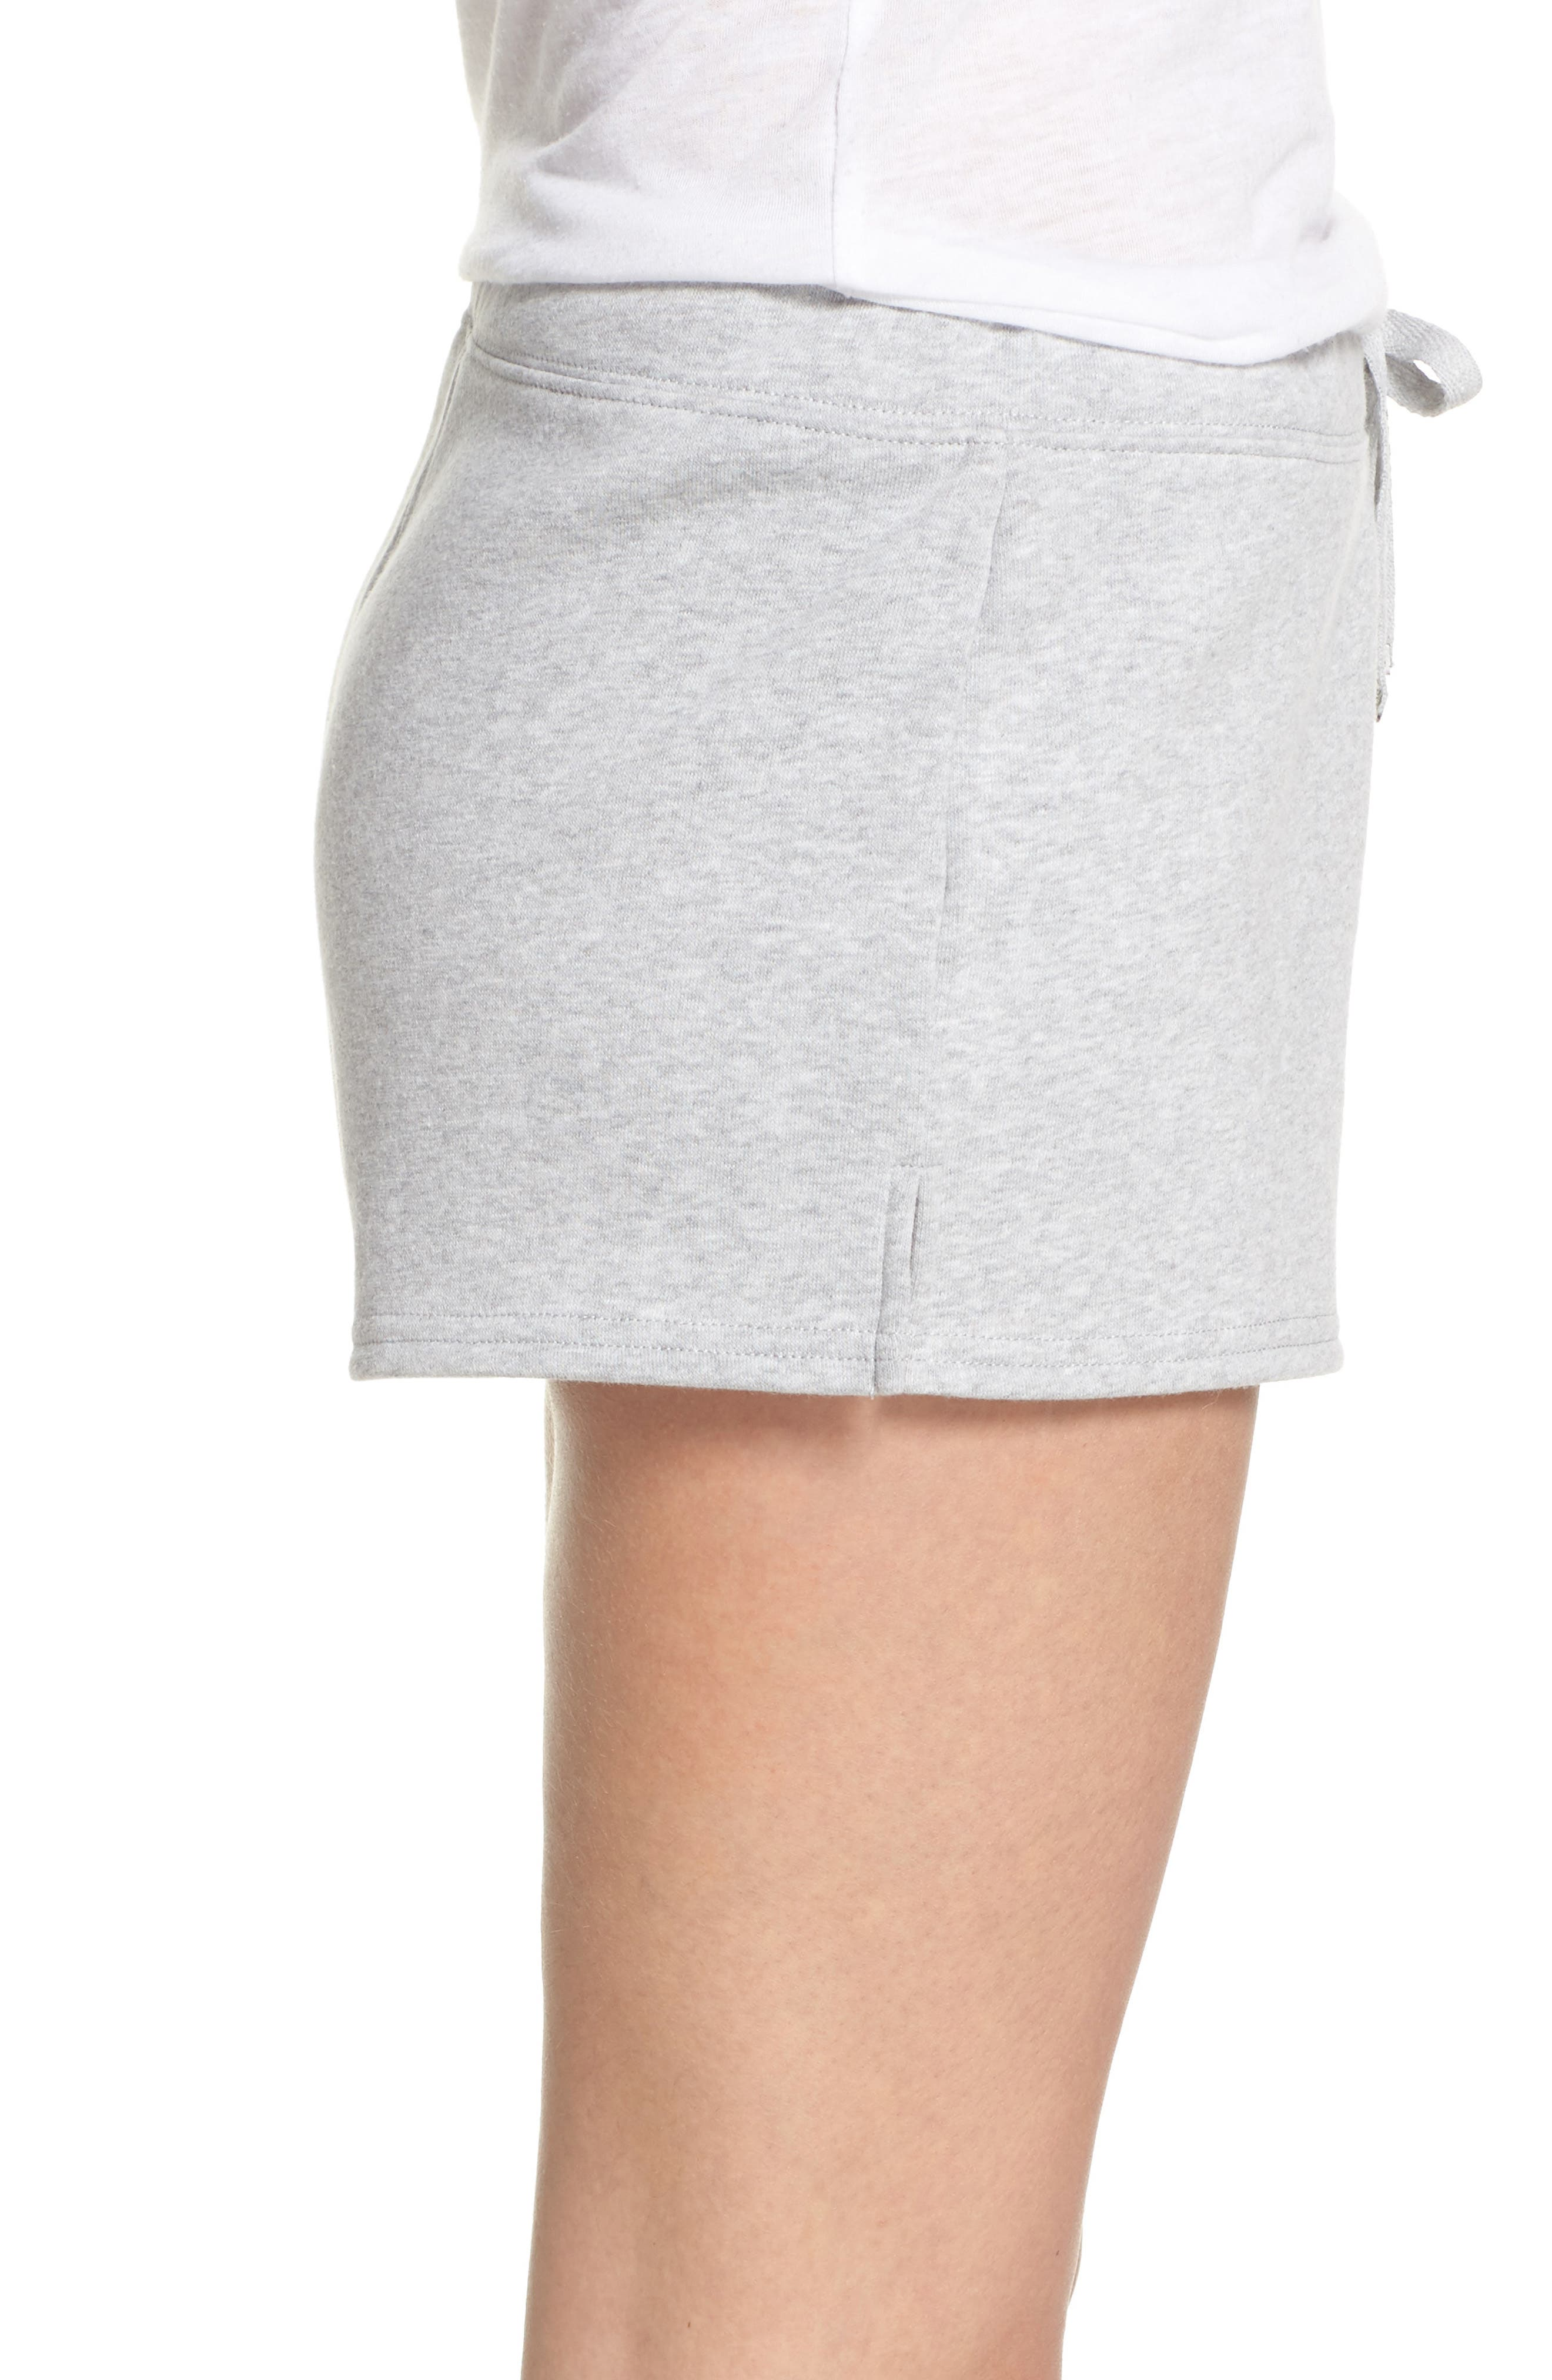 Take It Easy Lounge Shorts,                             Alternate thumbnail 3, color,                             021